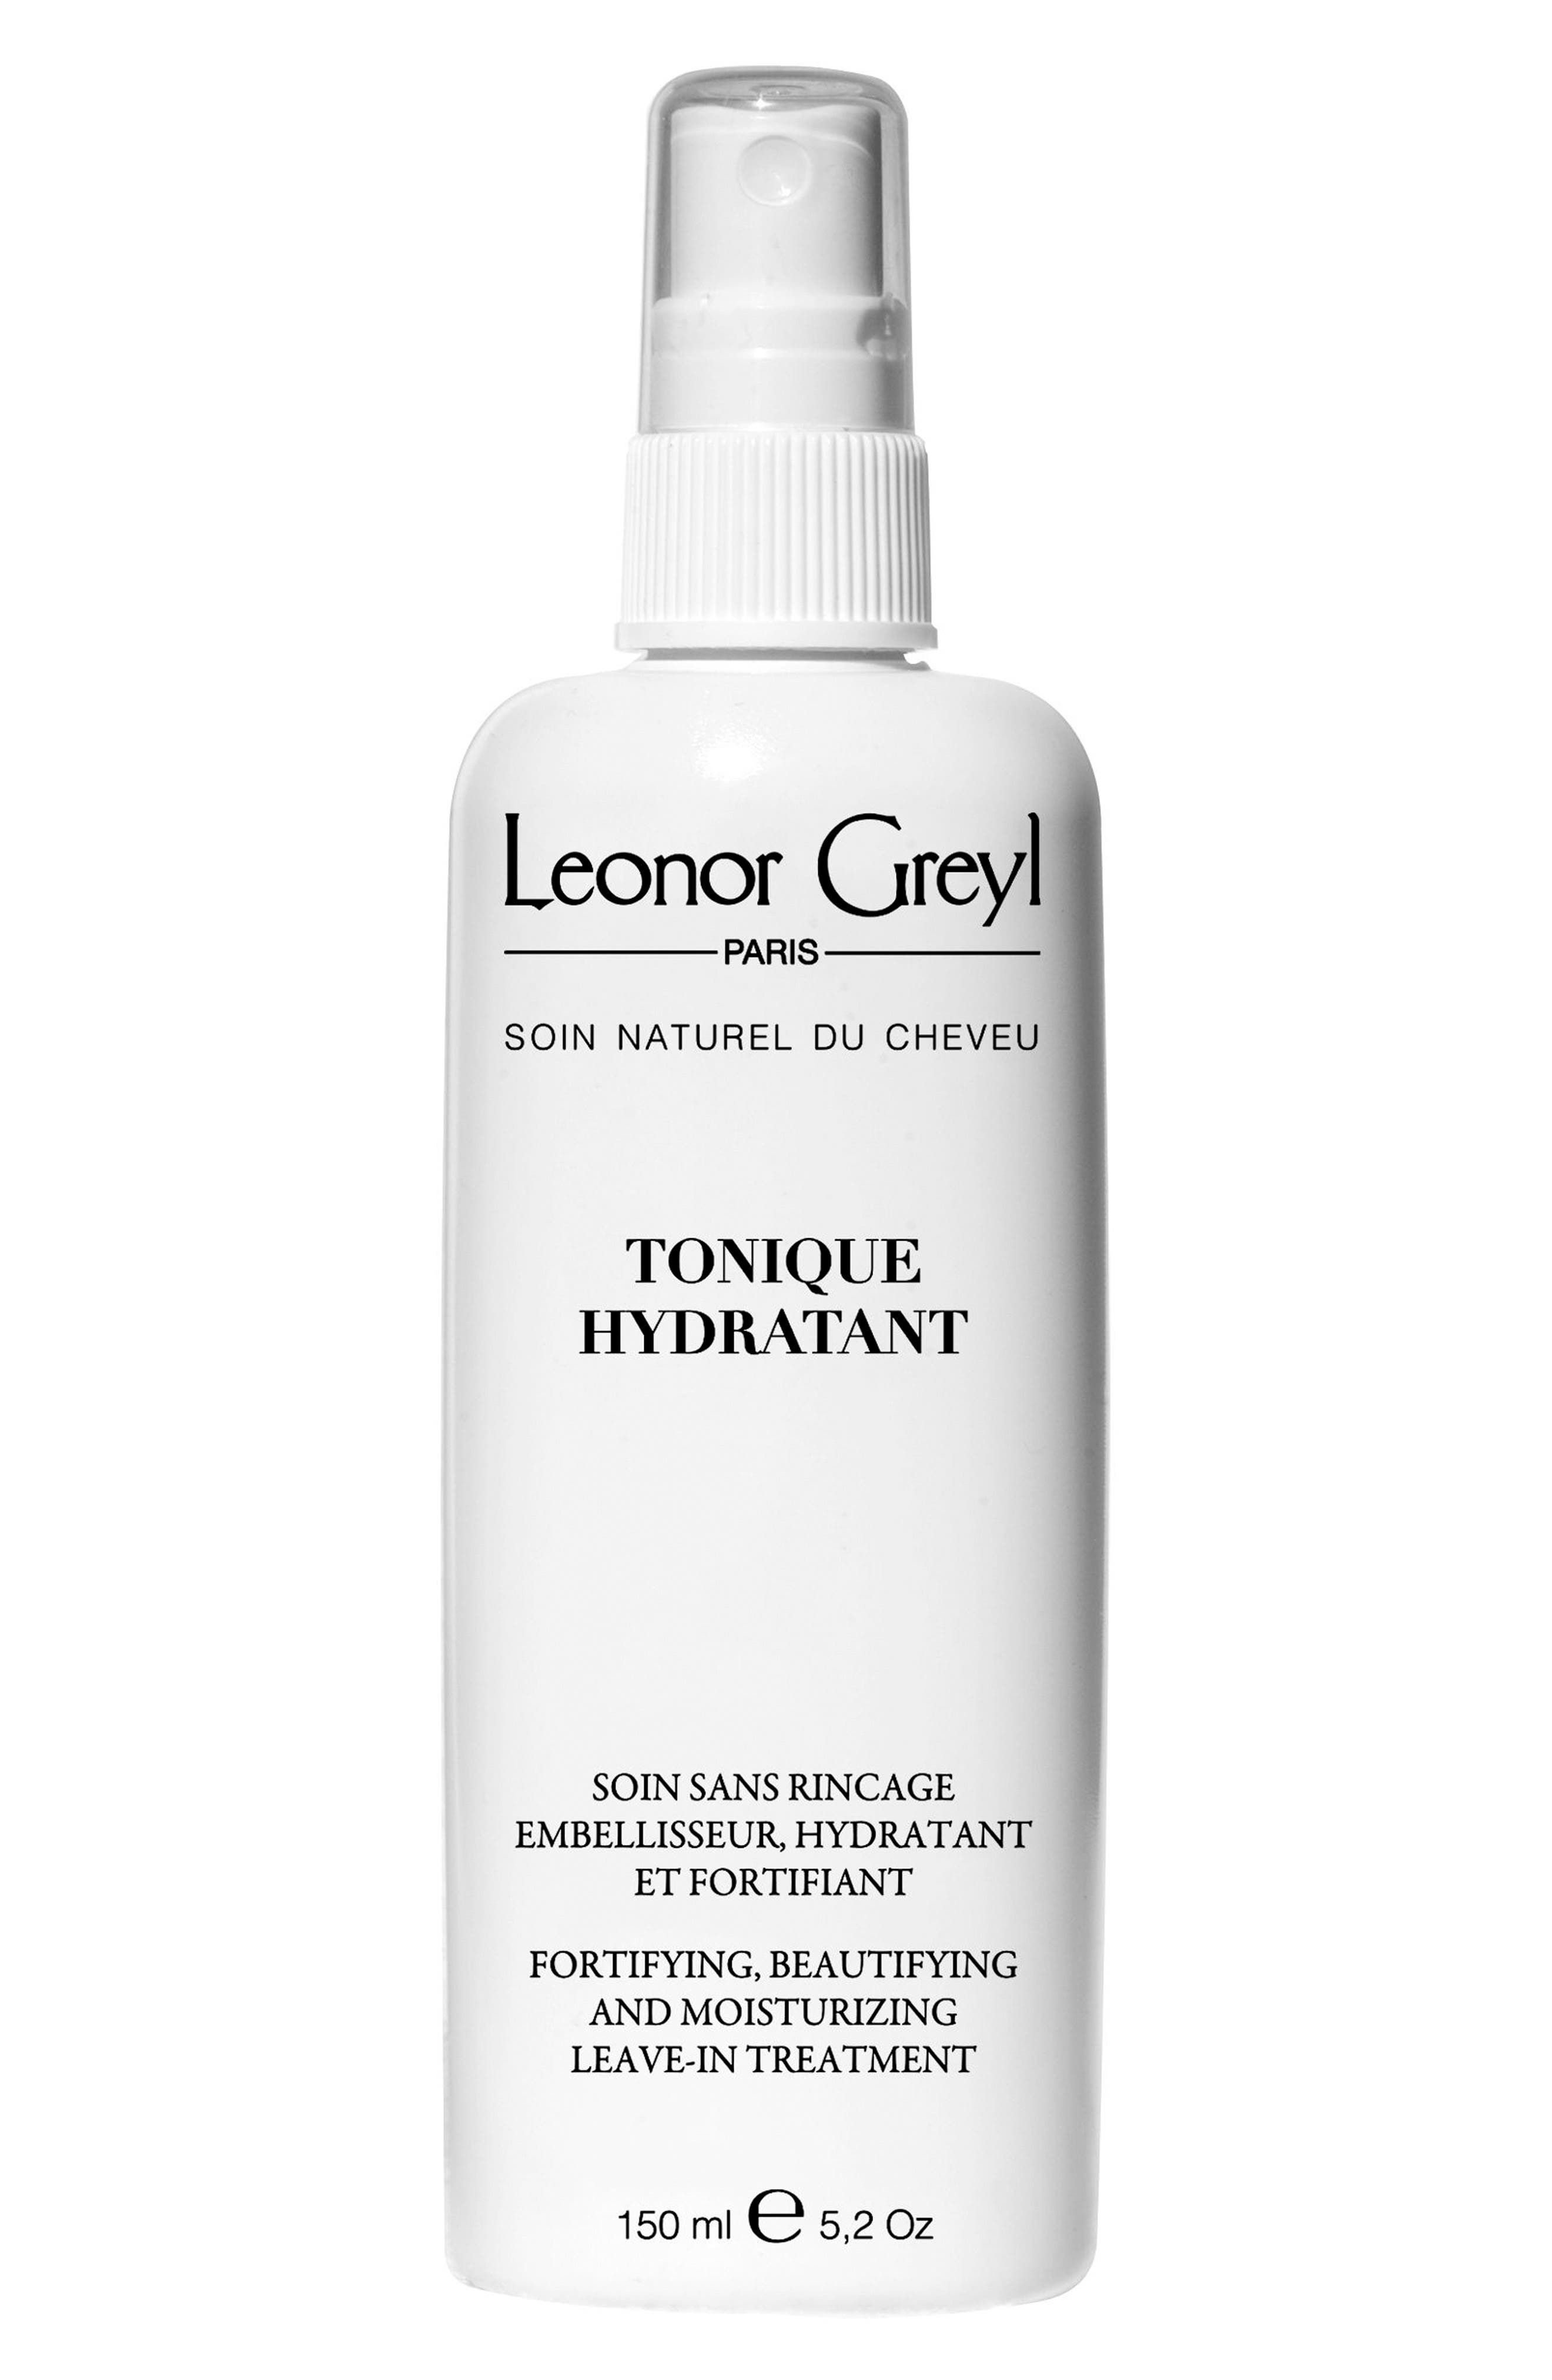 Leonor Greyl PARIS 'Tonique Hydratant' Leave-In Treatment Mist